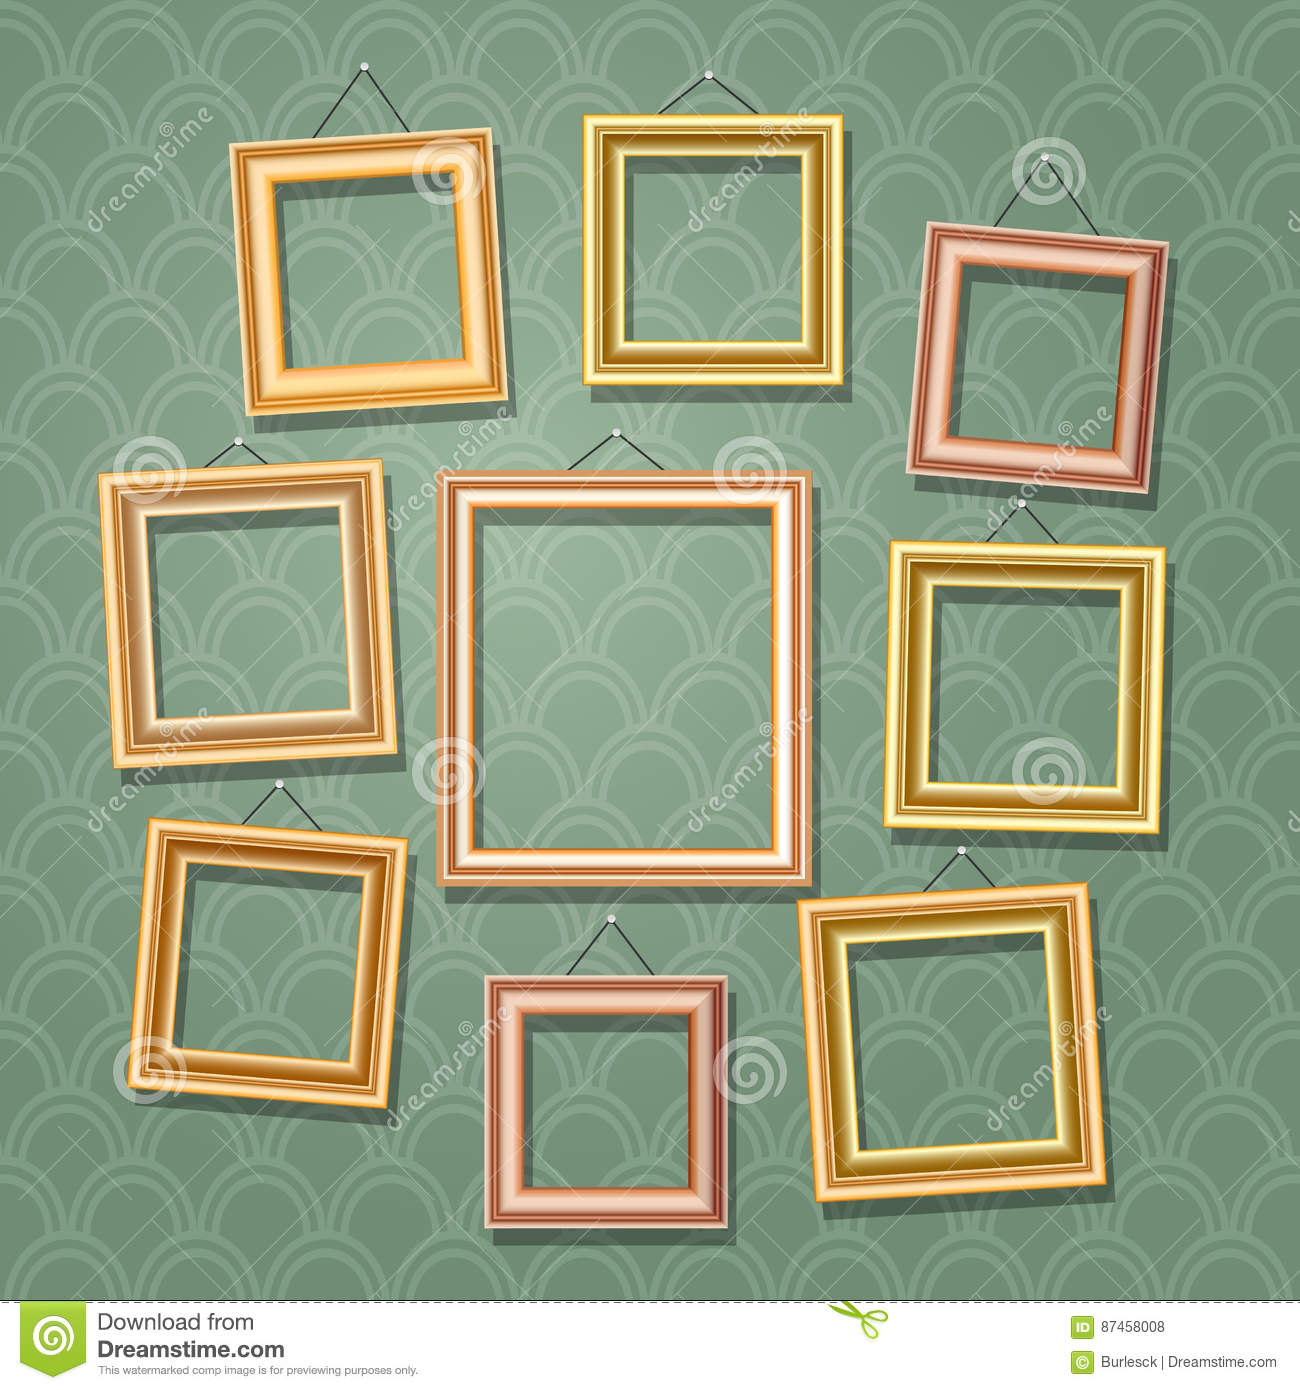 Wood frames set free vector - Empty Cartoon Photo Frames On Green Wall Retro Wooden Picture Frame Set Vector Illustration Stock